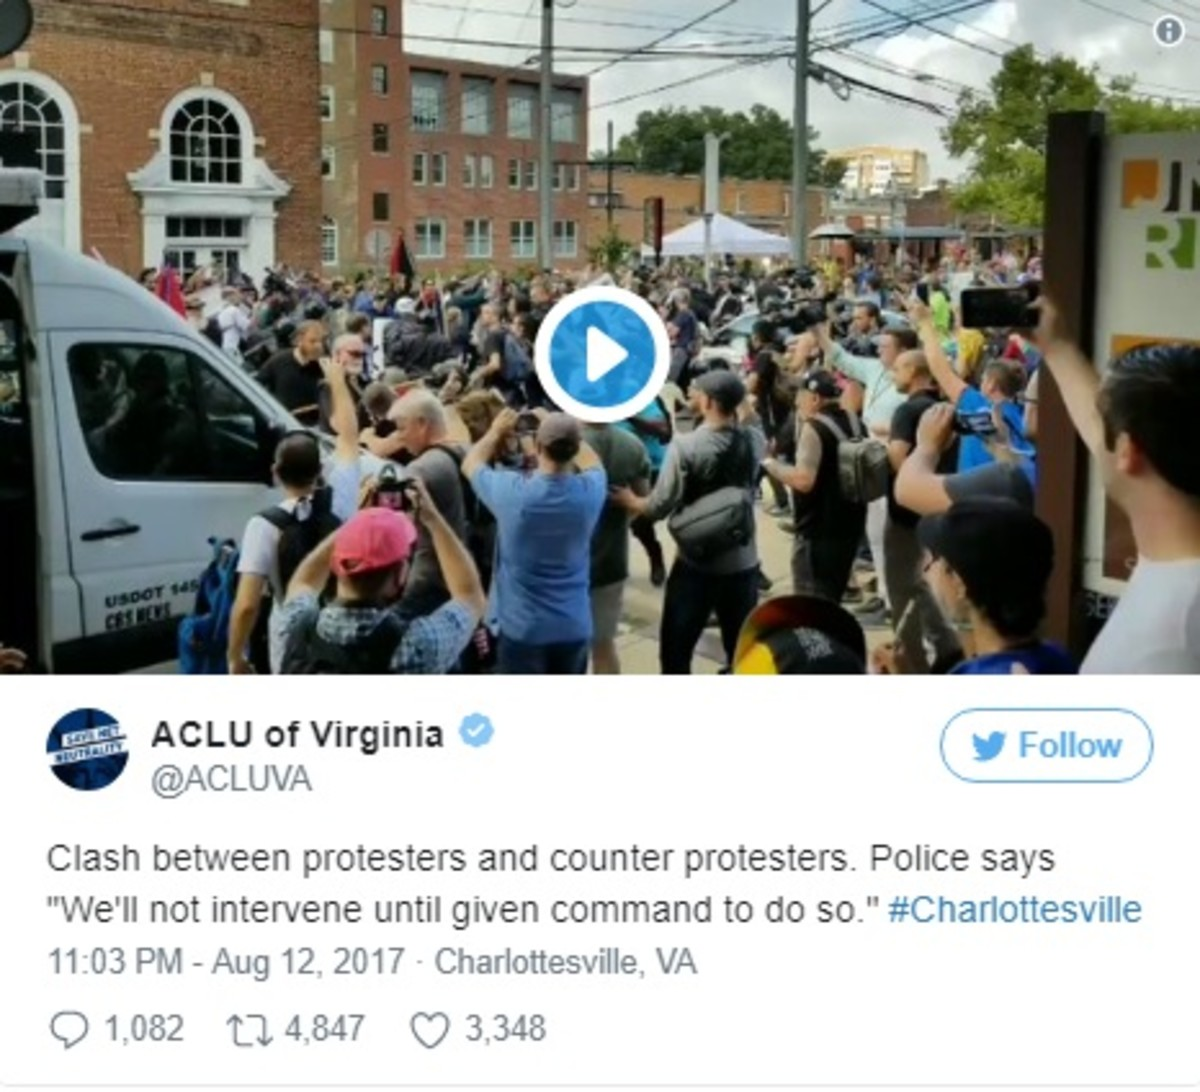 ACLU Tweet from Charlottesville